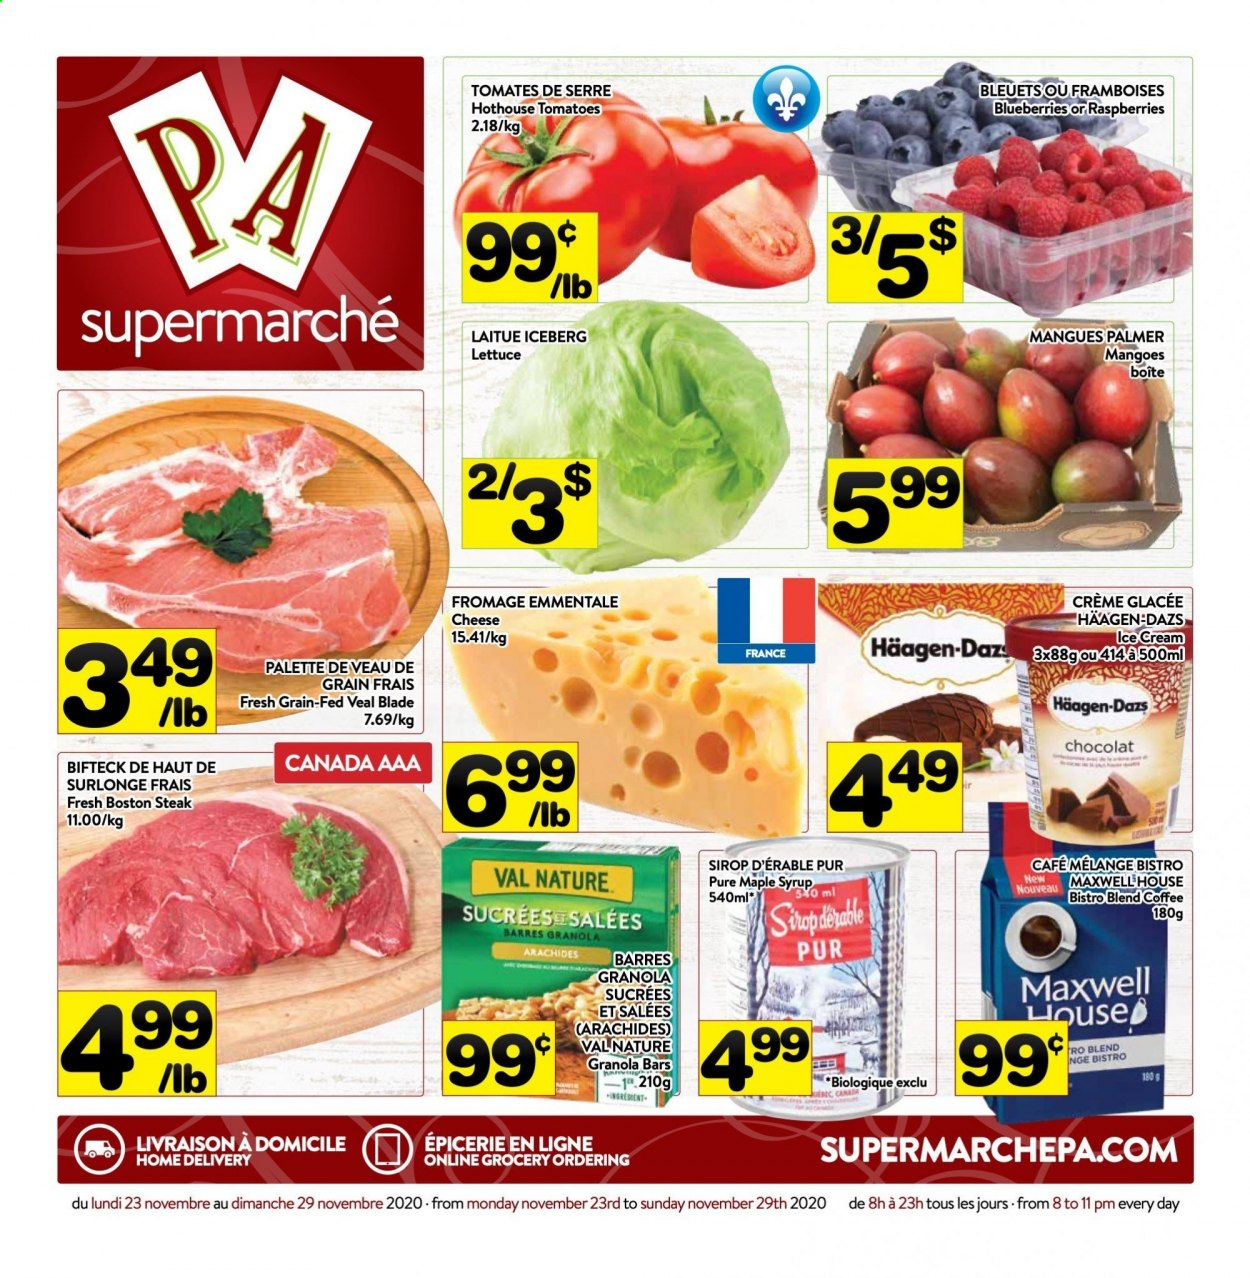 PA Supermarché Flyer - November 23, 2020 - November 29, 2020 - Sales products - blueberries, coffee, granola, granola bars, mango, maple syrup, Maxwell House, raspberries, tomatoes, veal meat, ice cream, Palette, lettuce, steak, cheese, syrup. Page 1.